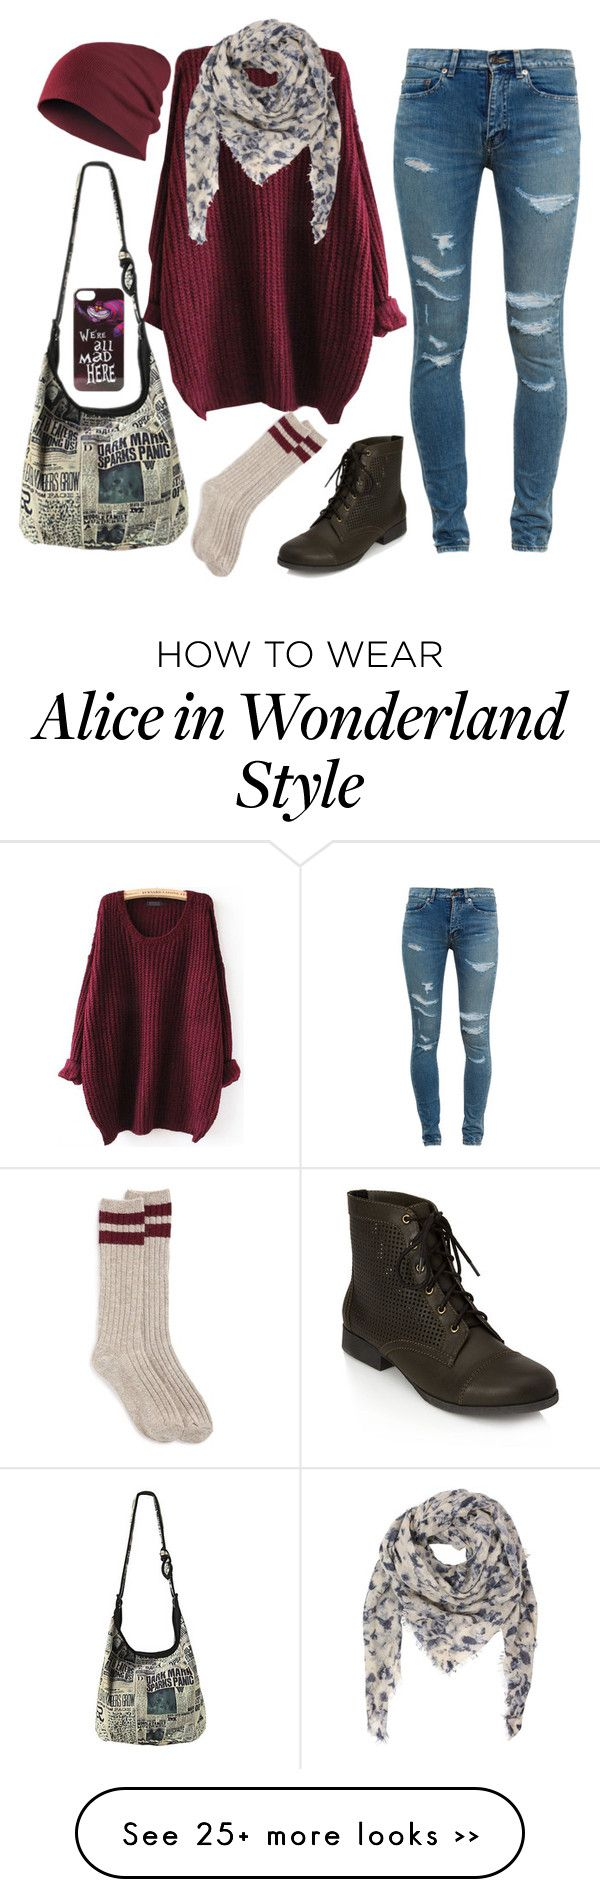 """Me in the Autumn"" by krazybookfangirl on Polyvore featuring Yves Saint Laurent, Forever 21 and Disney"